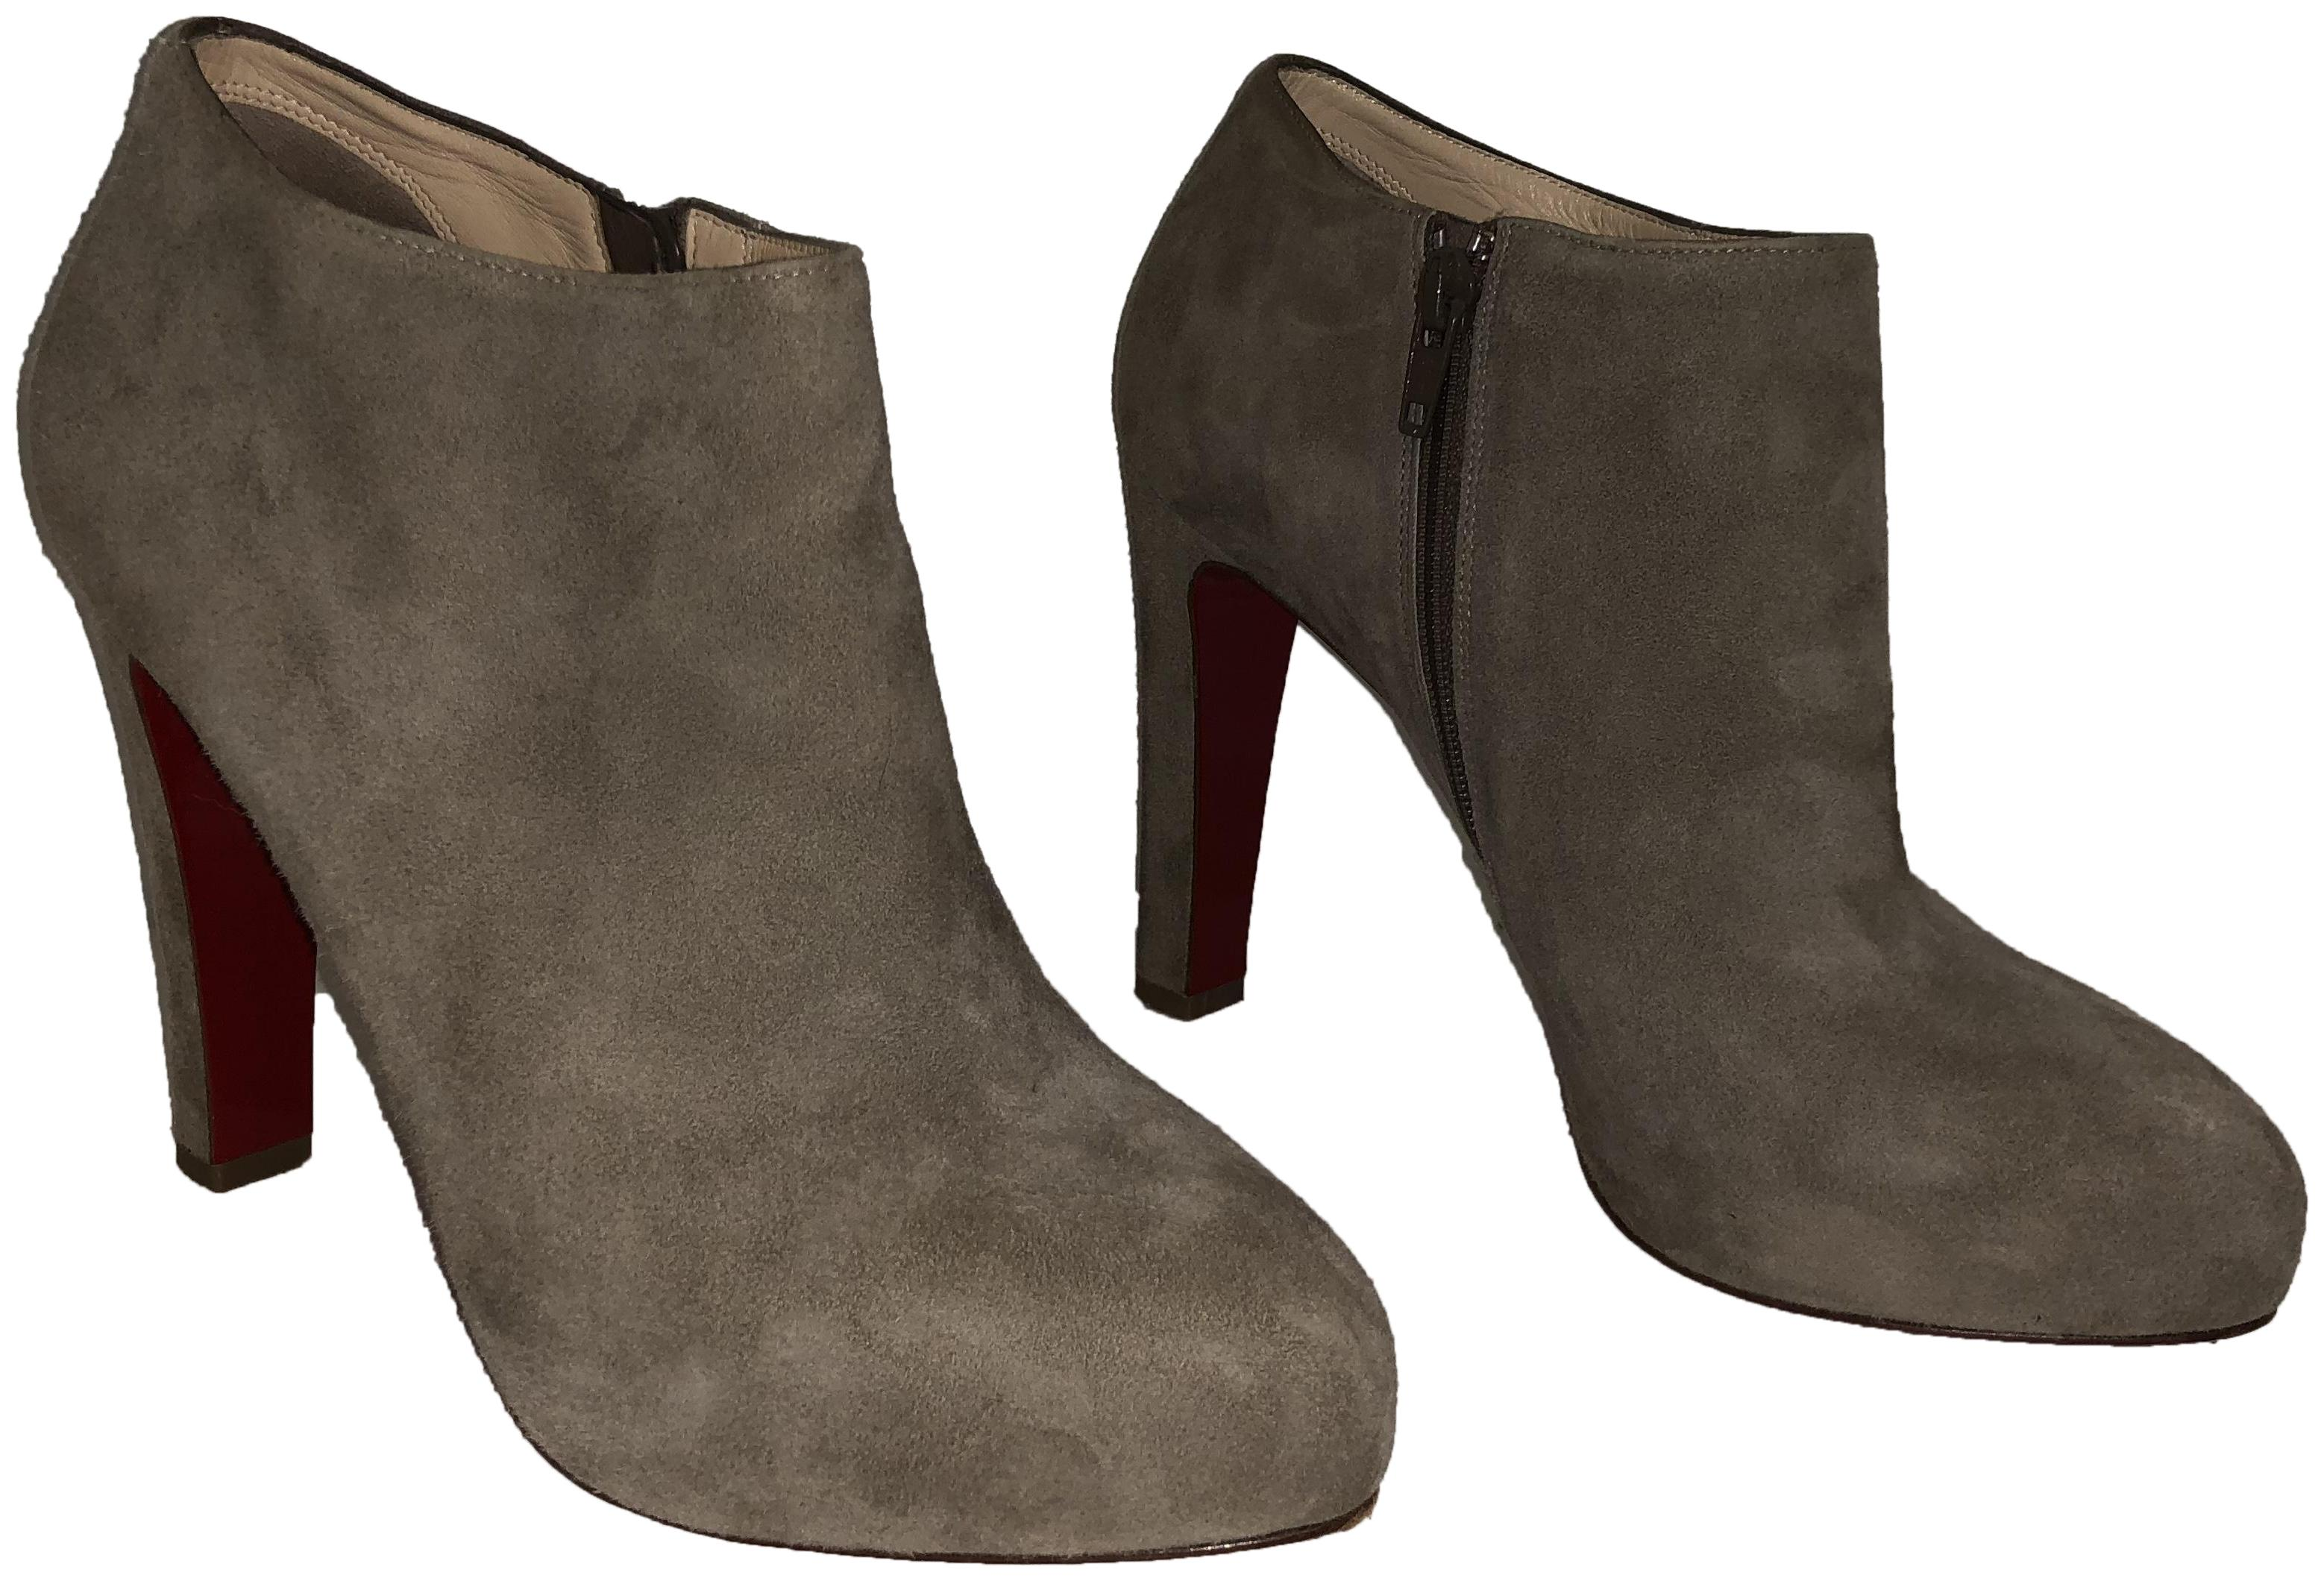 4739b2f7dc6d Christian Christian Christian Louboutin Oyster Vicky 120 Suede Boots Booties  Size EU 39 (Approx